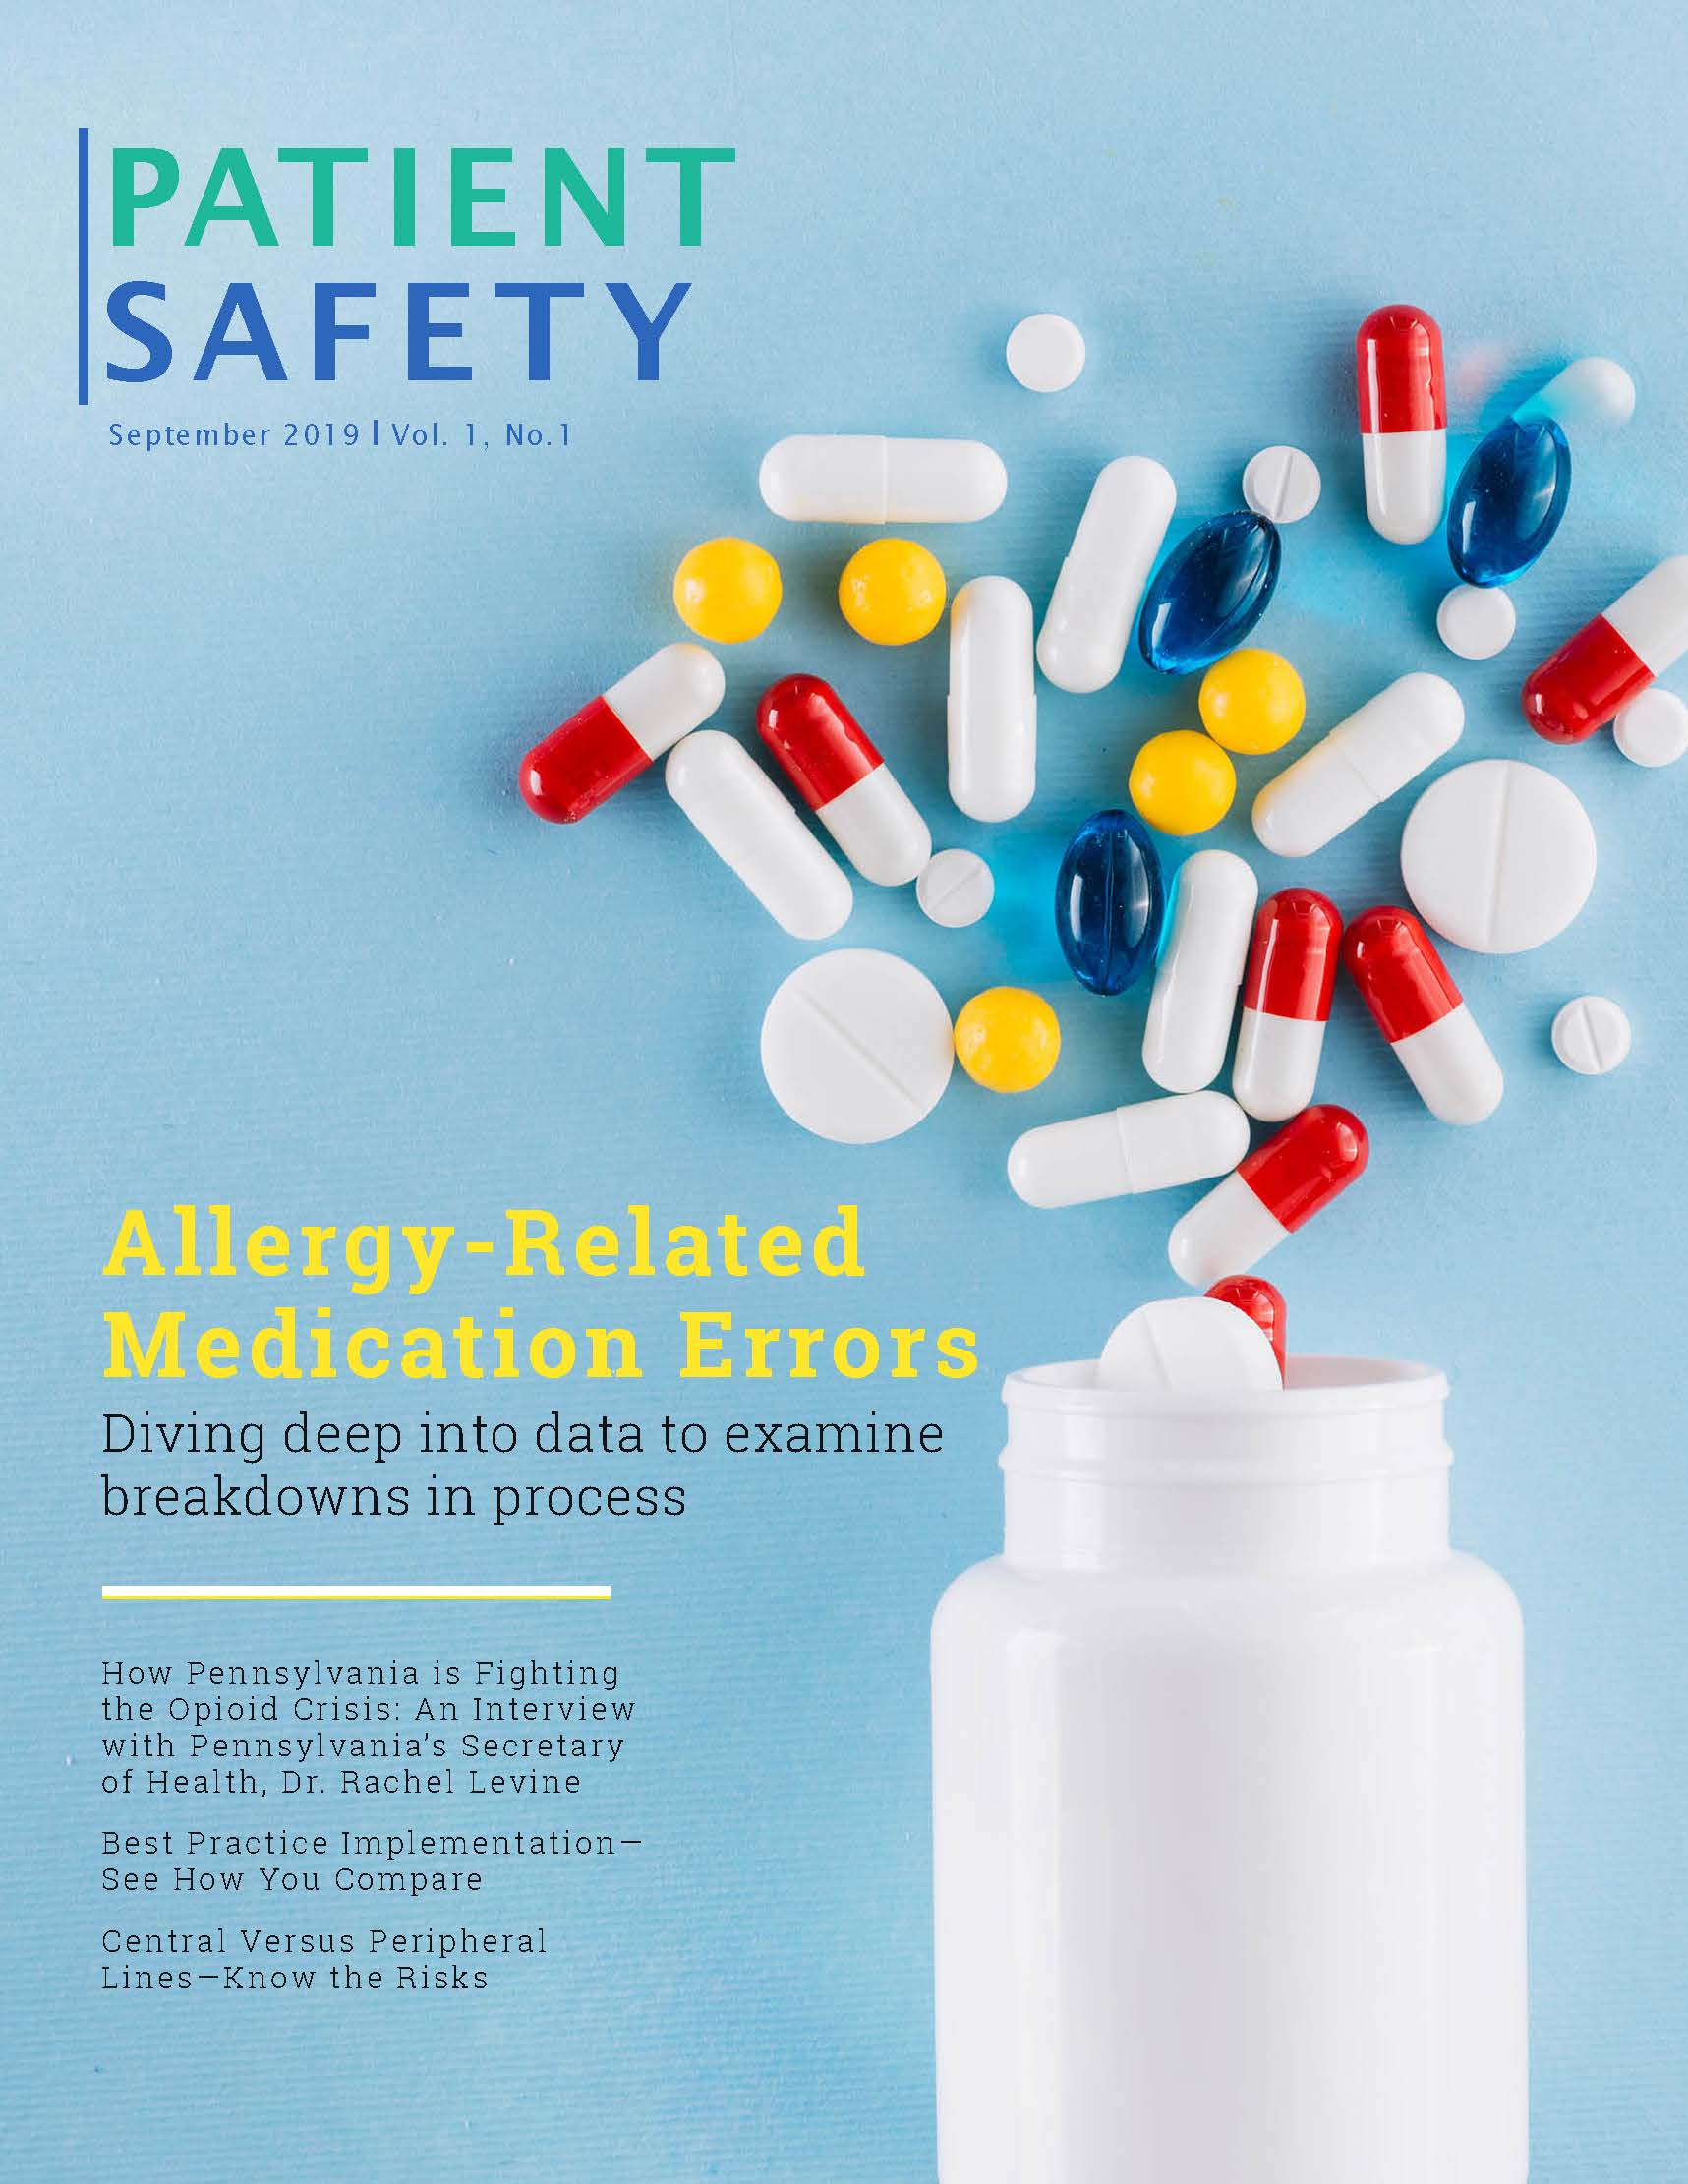 Patient Safety pills/medication cover story